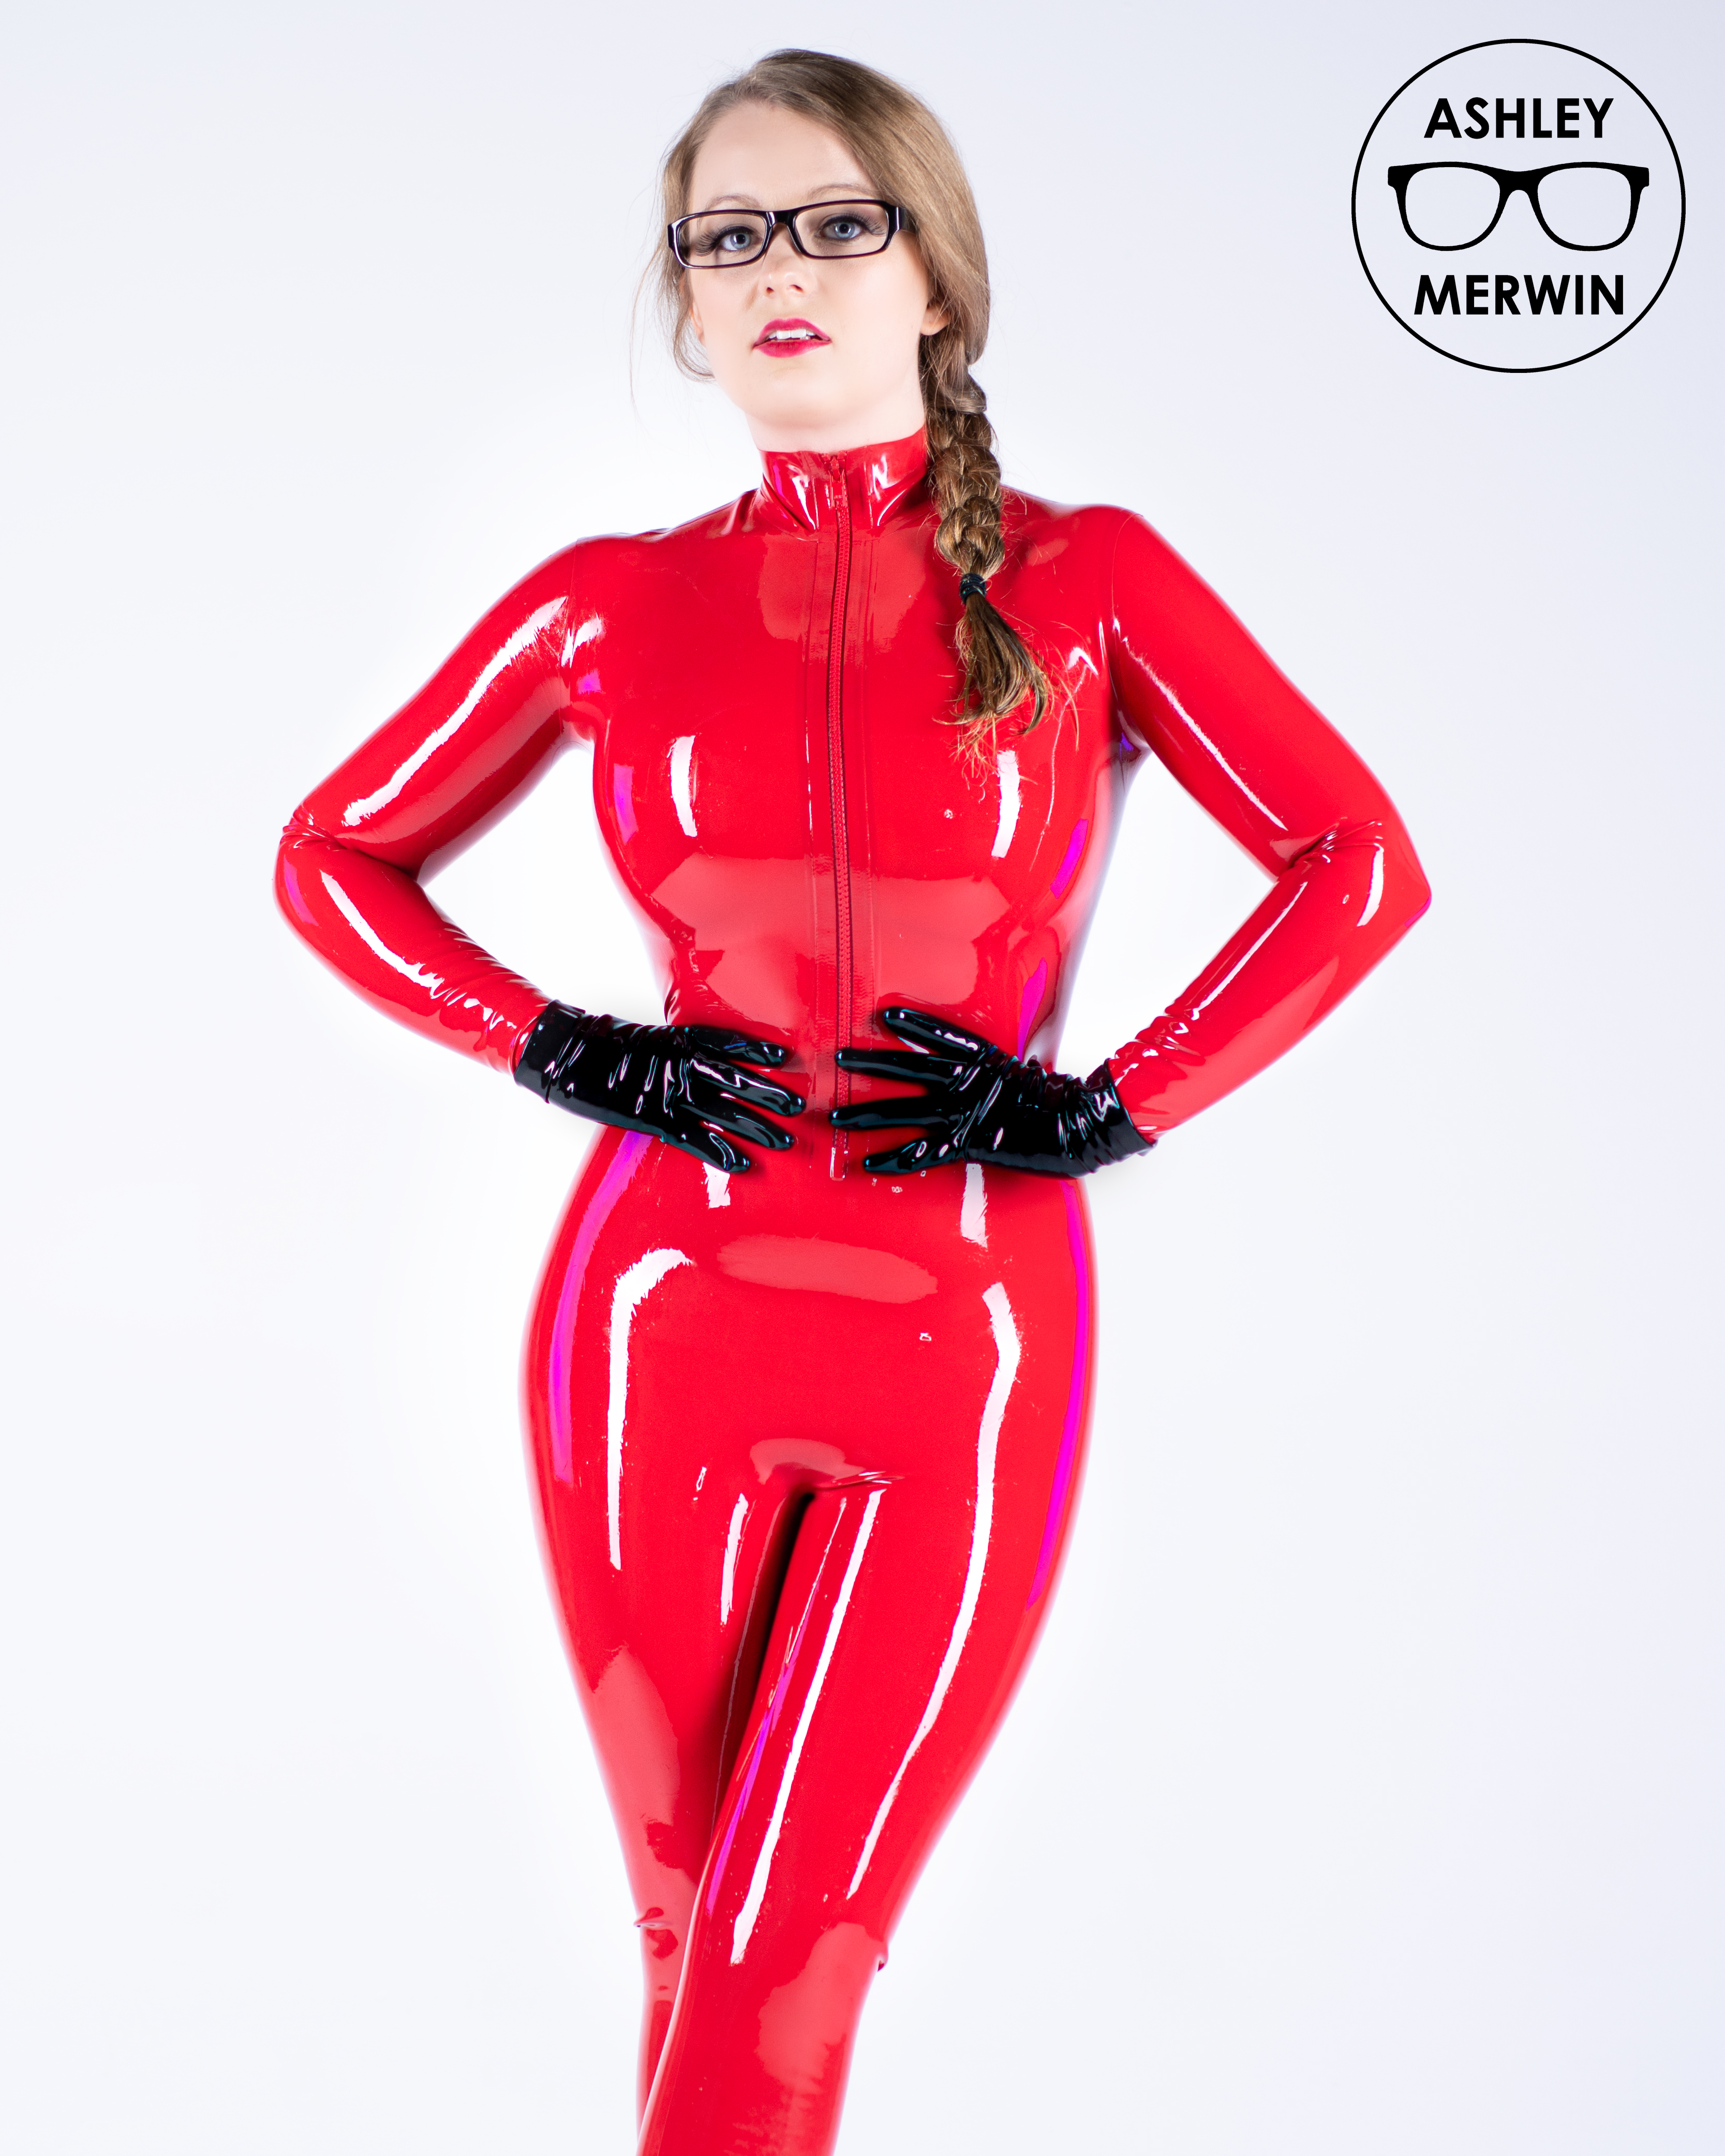 Ashley Merwin In Red Catsuit 💘💜💕💗❤💞